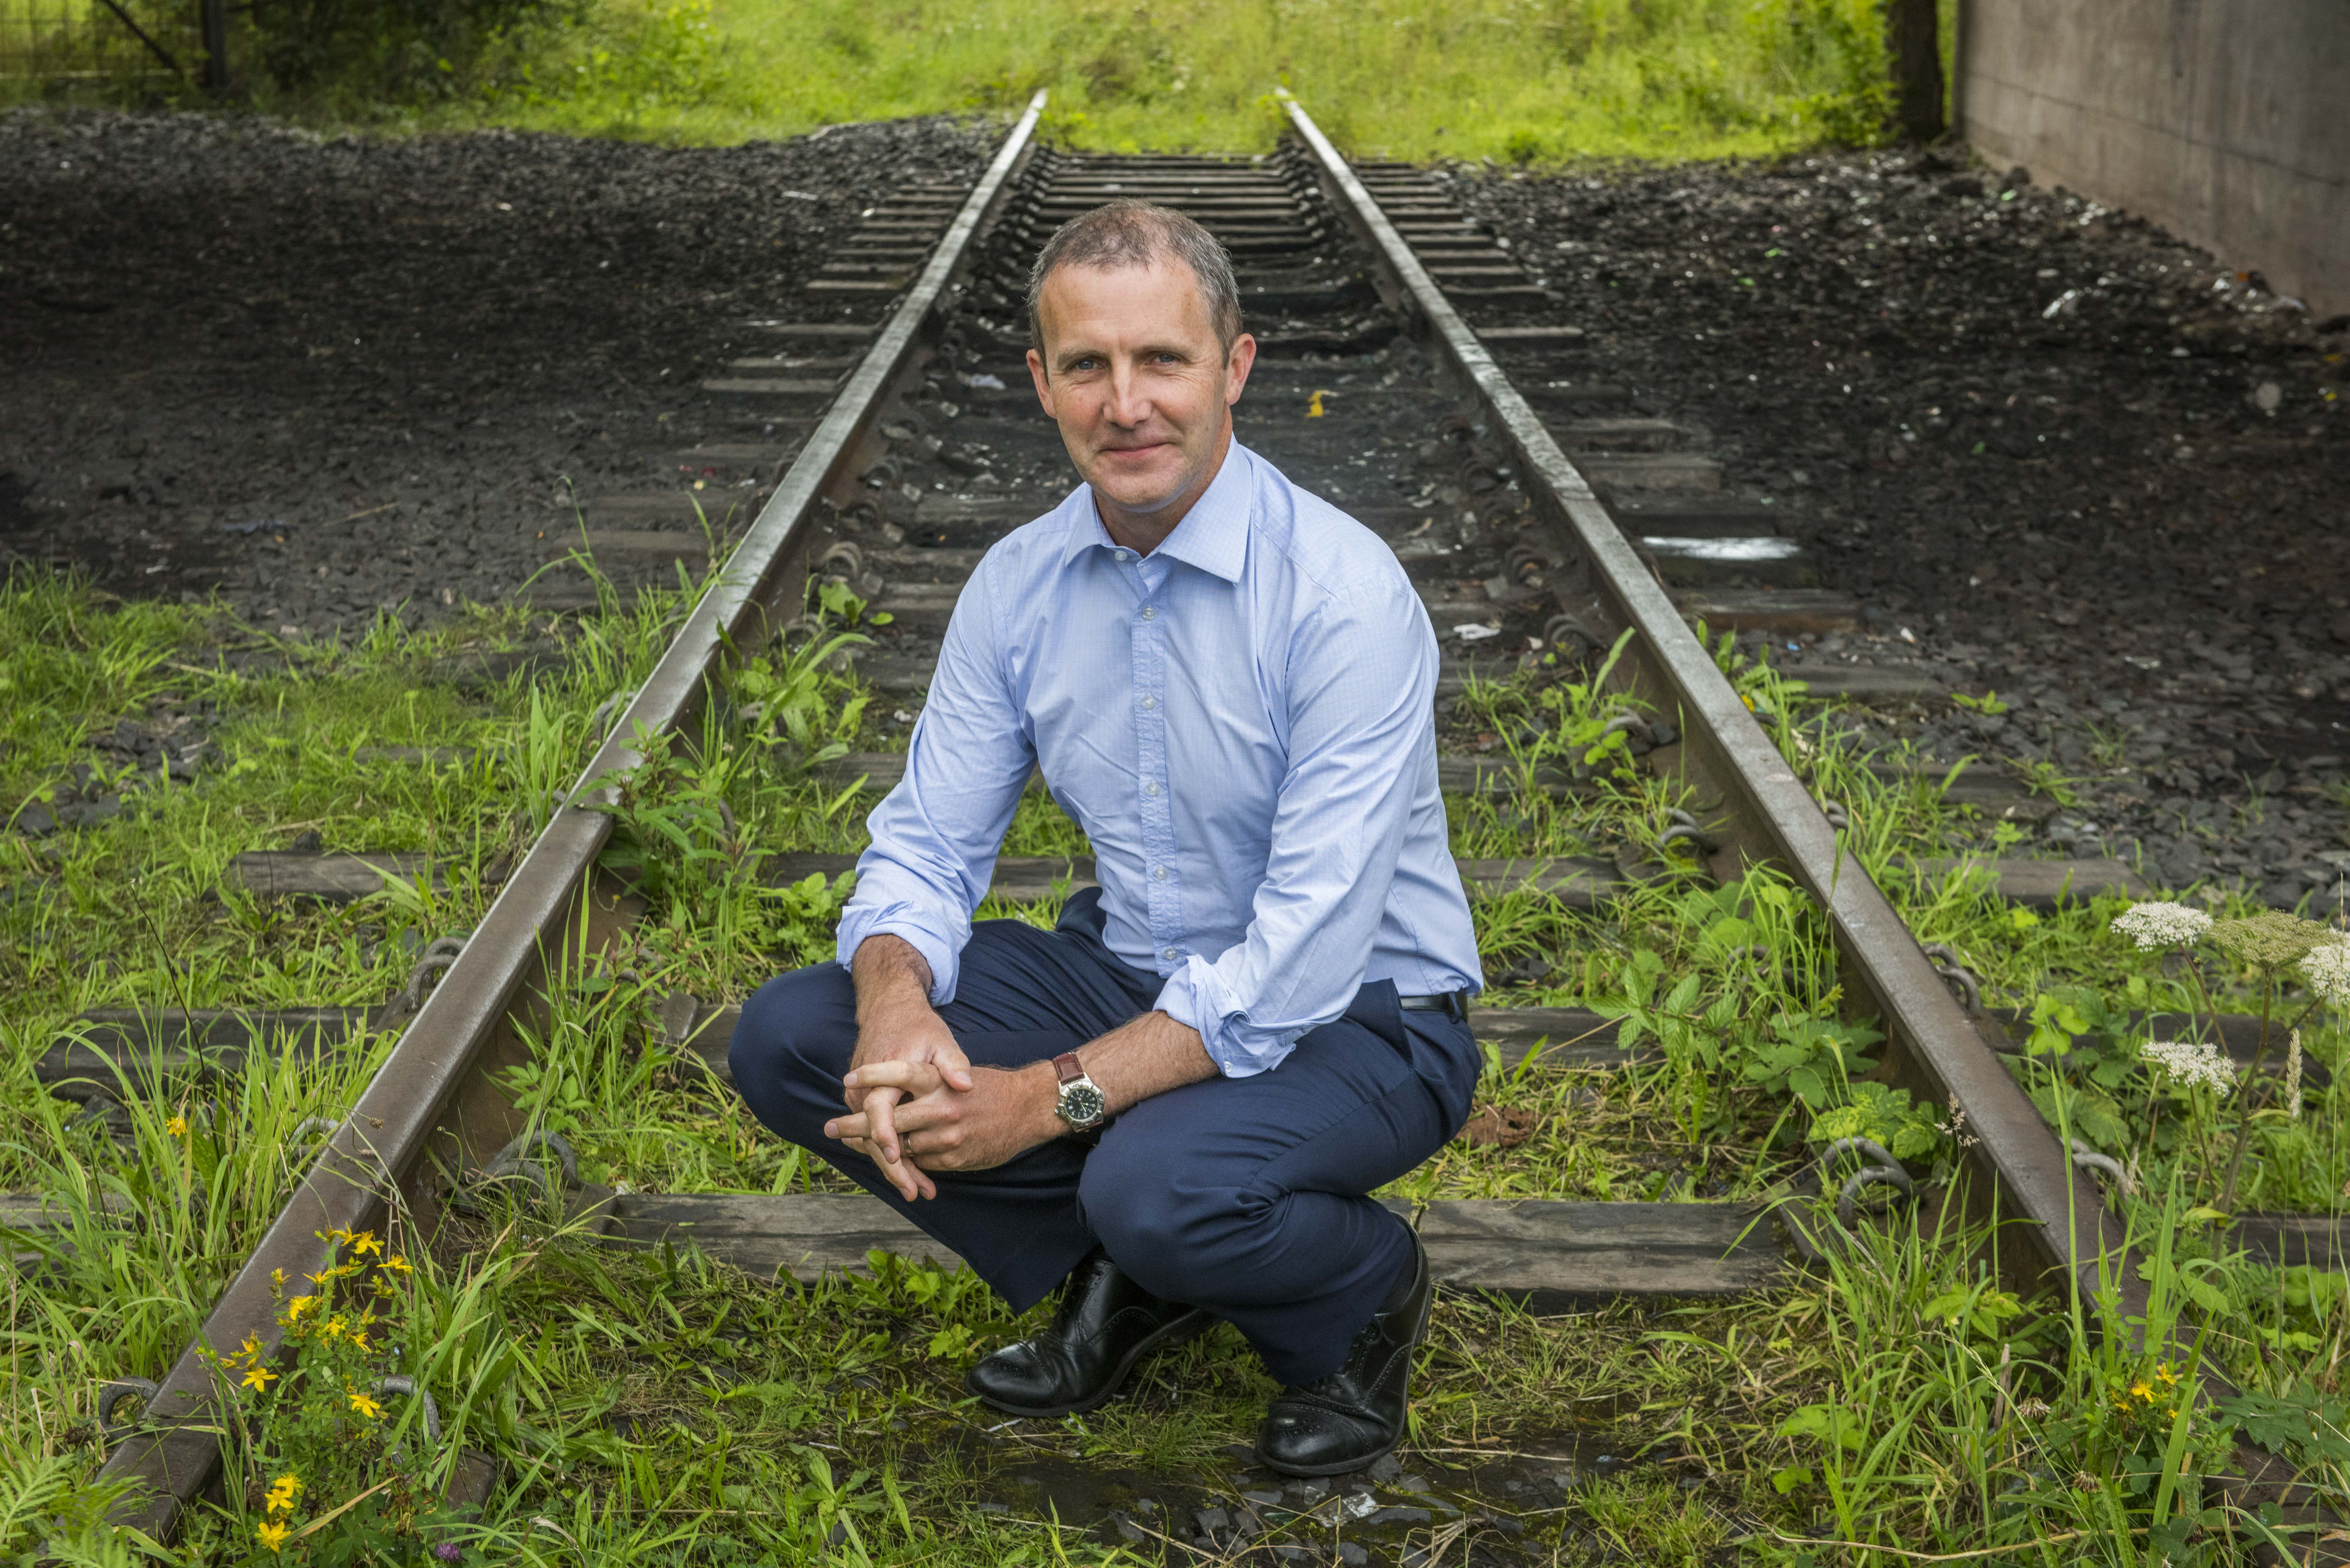 Transport Minister Michael Matheson said local workforce will be involved in construction.